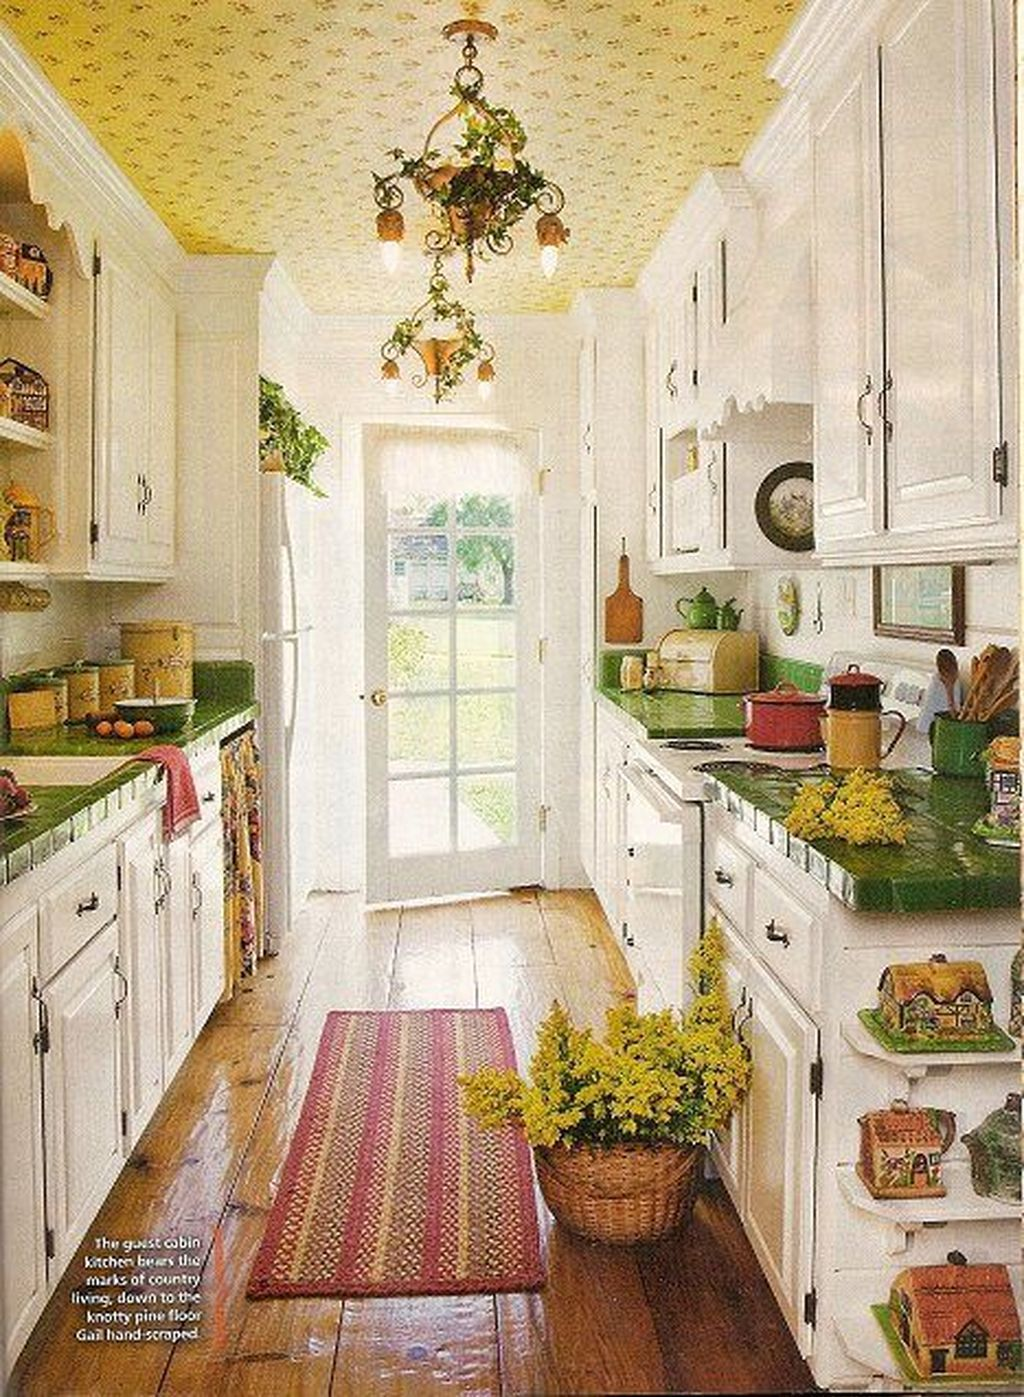 Cucina Cottage Inglese 53 Beautiful Cottage Kitchen Design Ideas Immagini Evocative